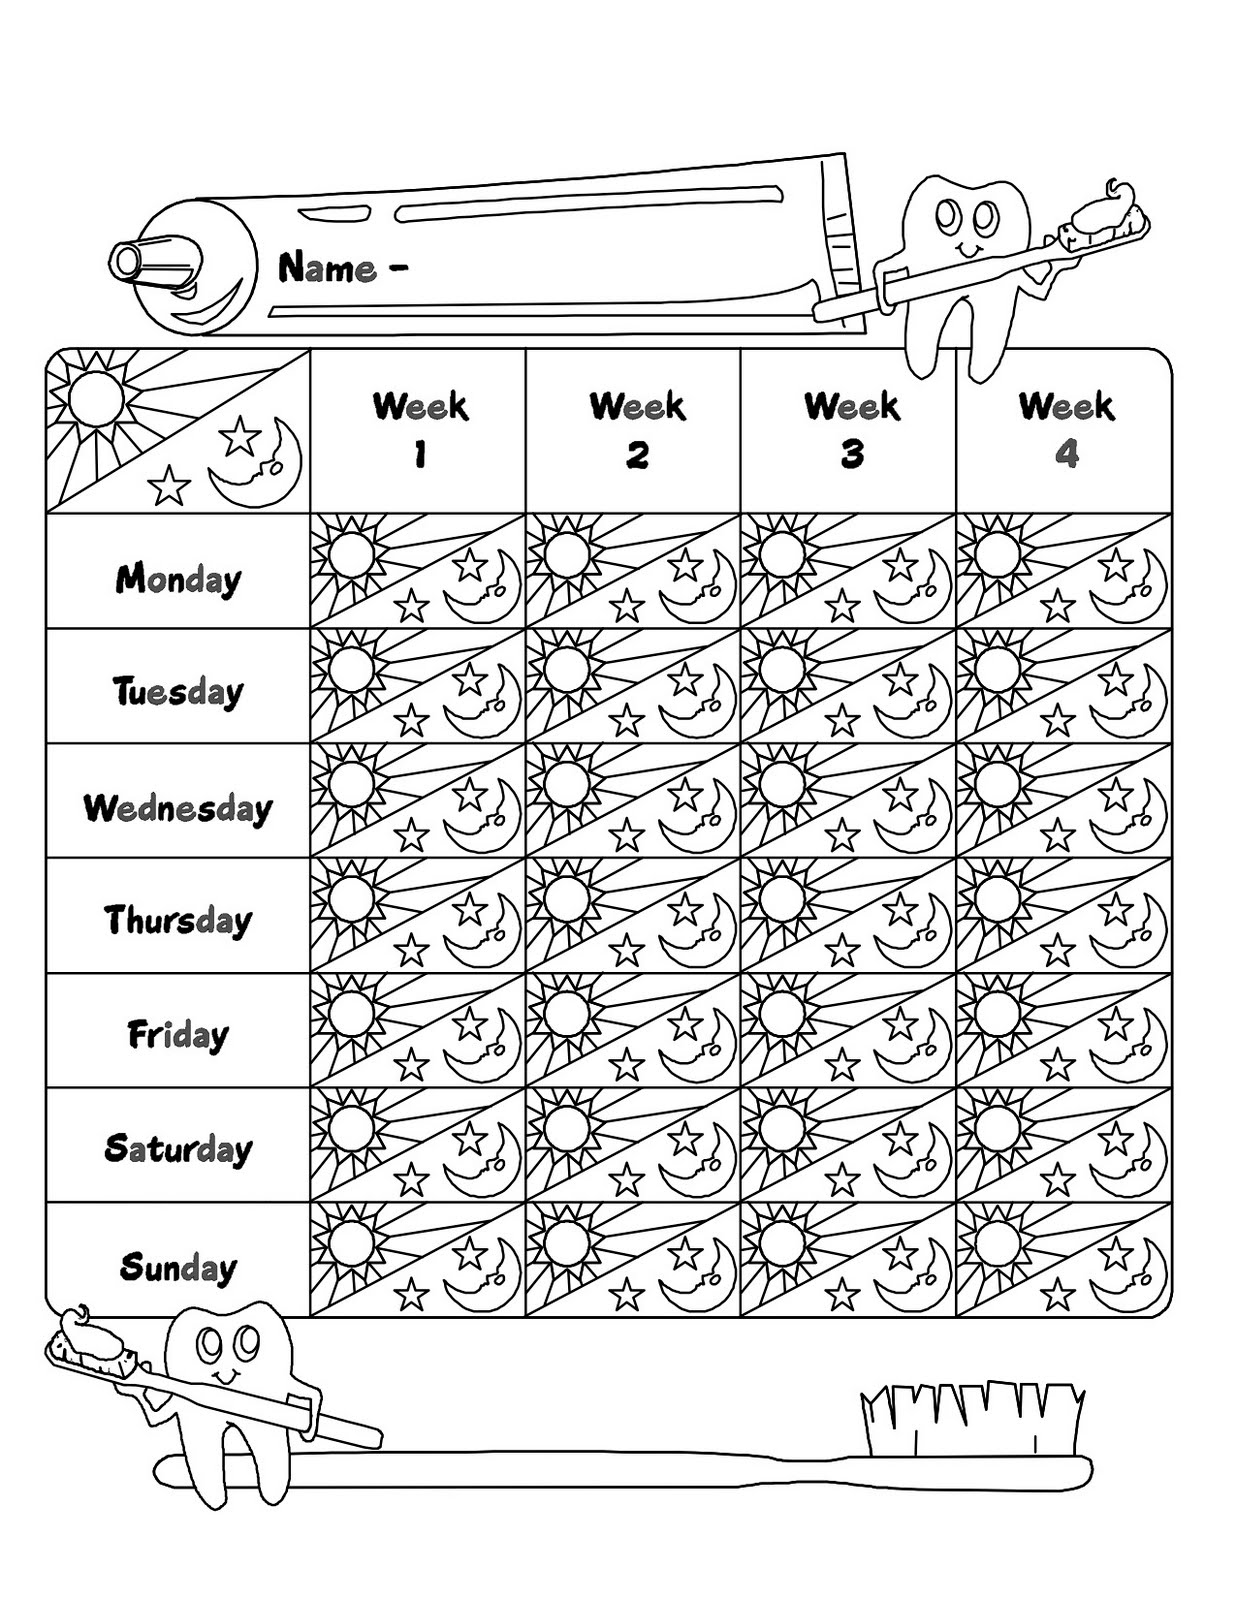 Teeth Brushing Coloring Chart Coloring Pages